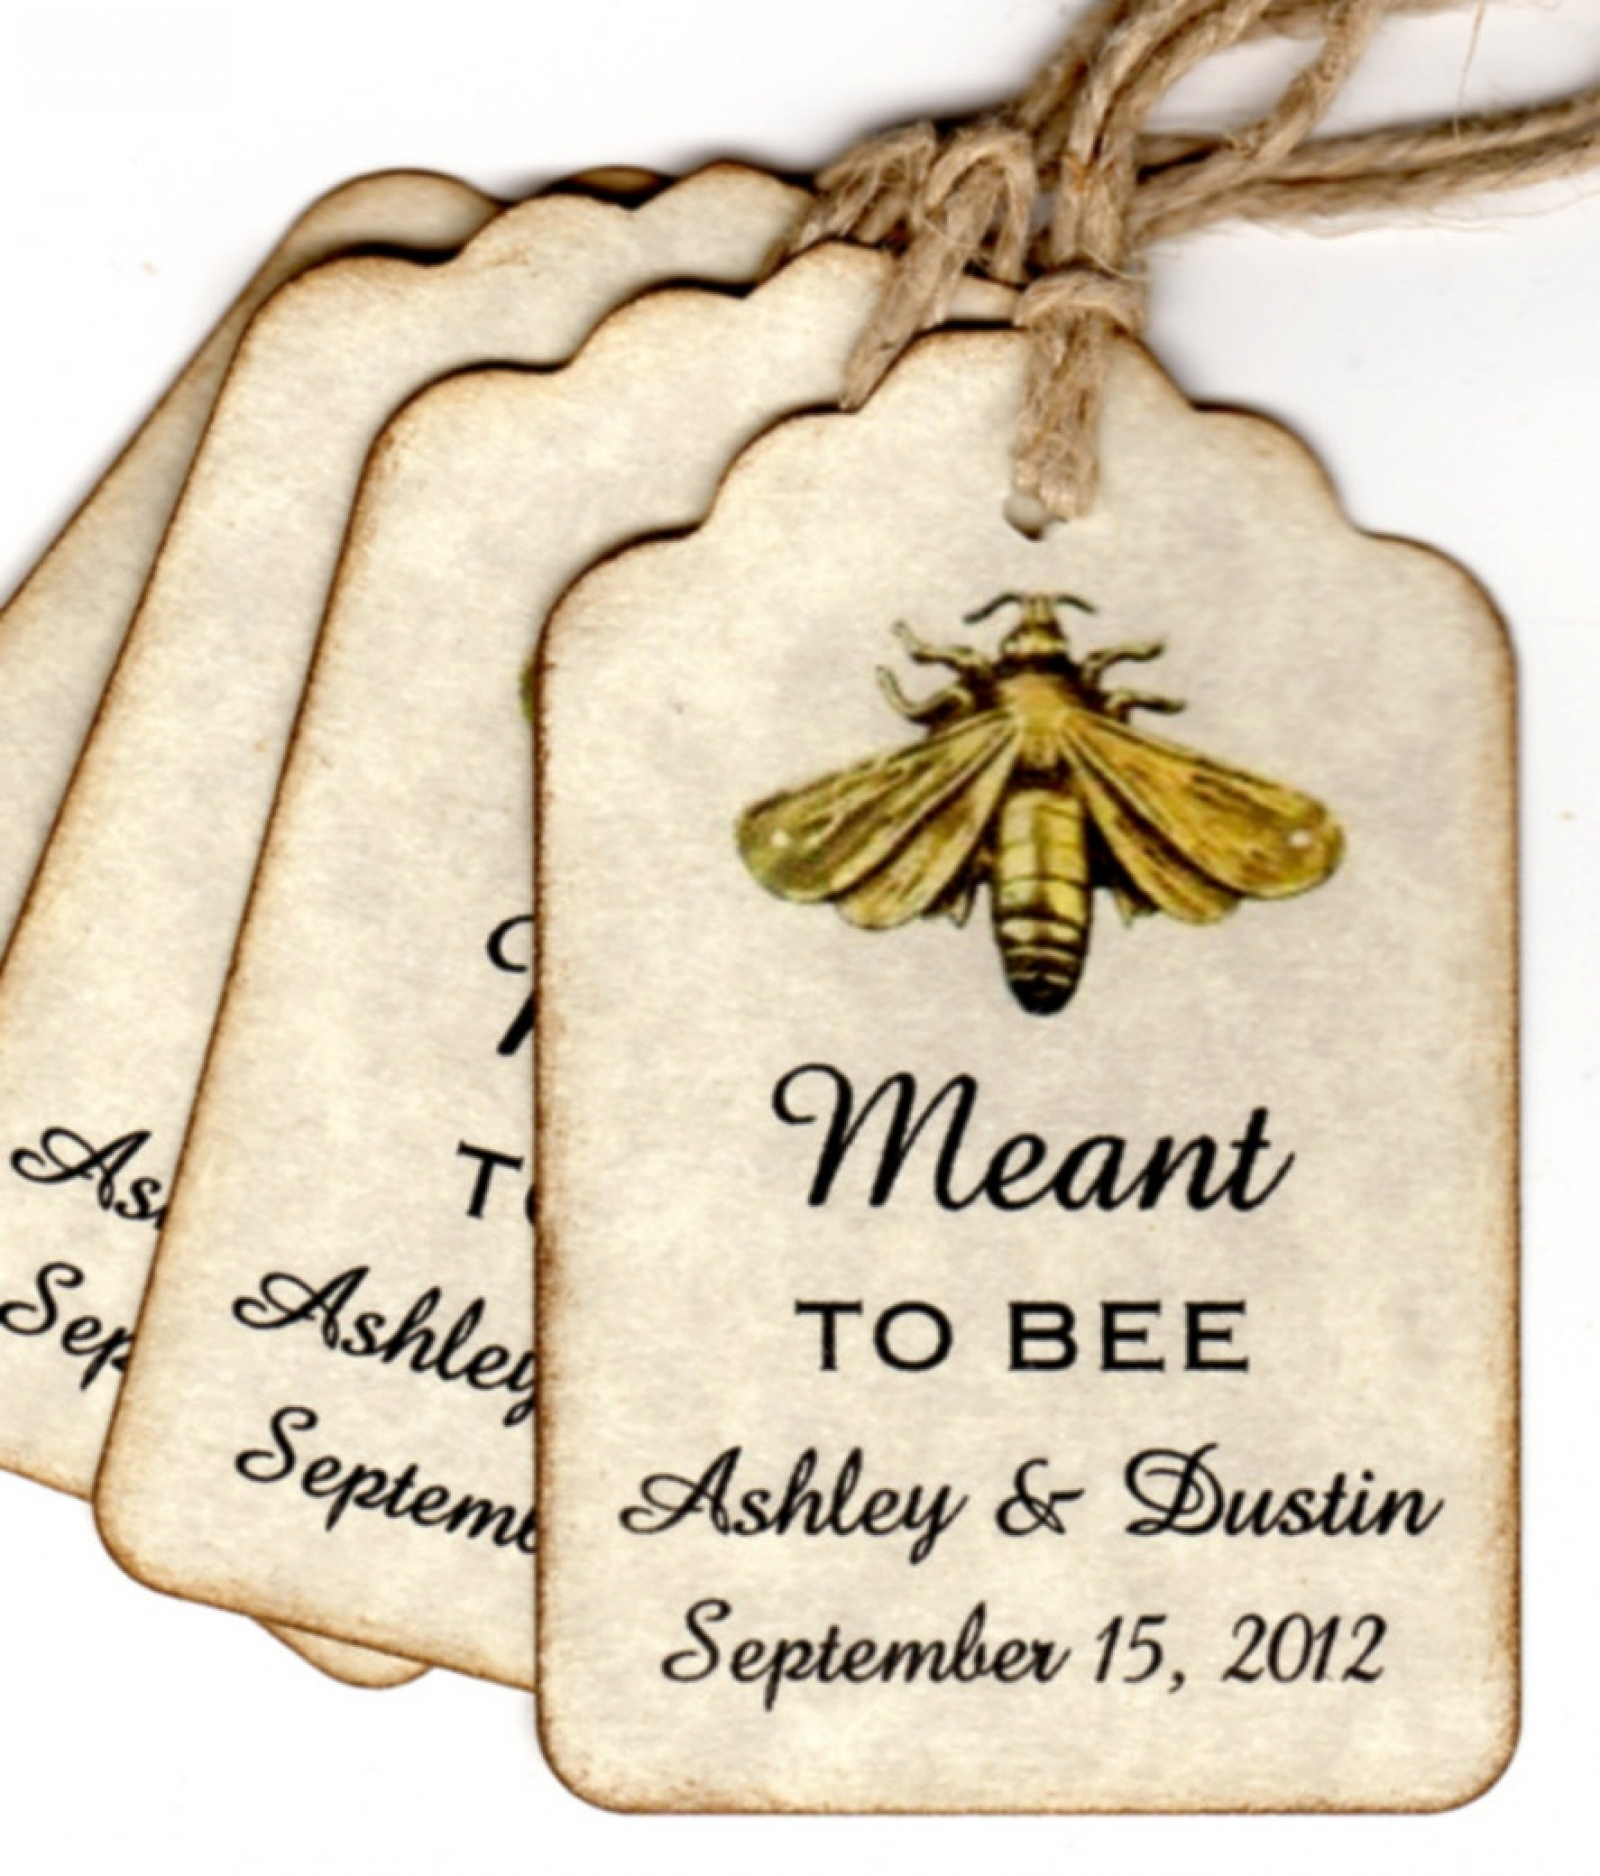 50 vintage meant to bee wedding favor gift tags wedding wish tags personalized escort tags place cards honey jar labels labels